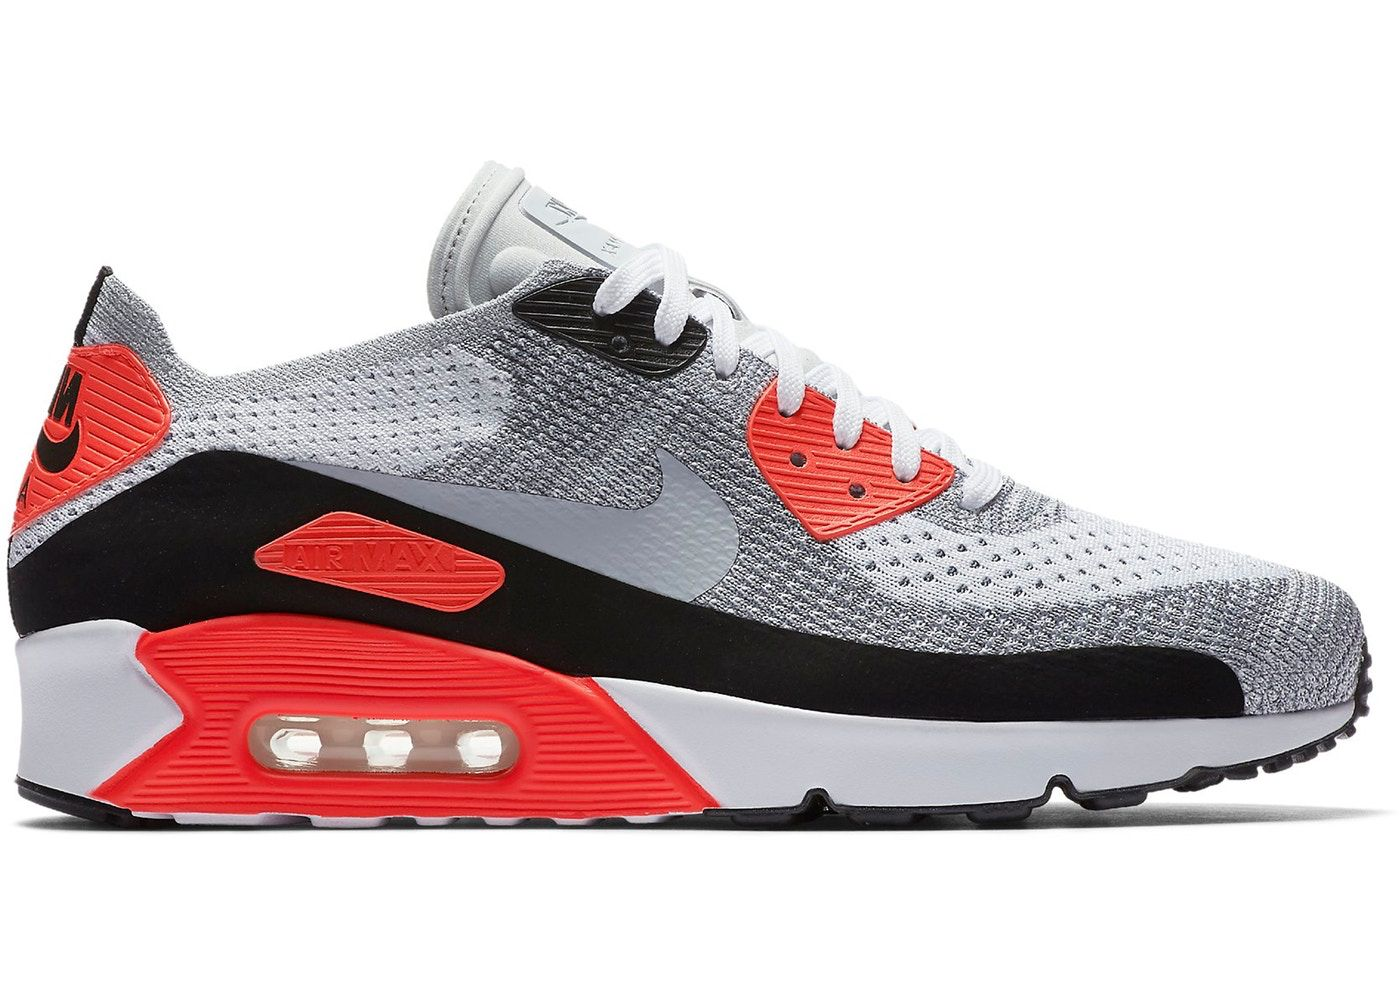 fa5c375d Check out the Air Max 90 Ultra Flyknit 2.0 Infrared available on StockX